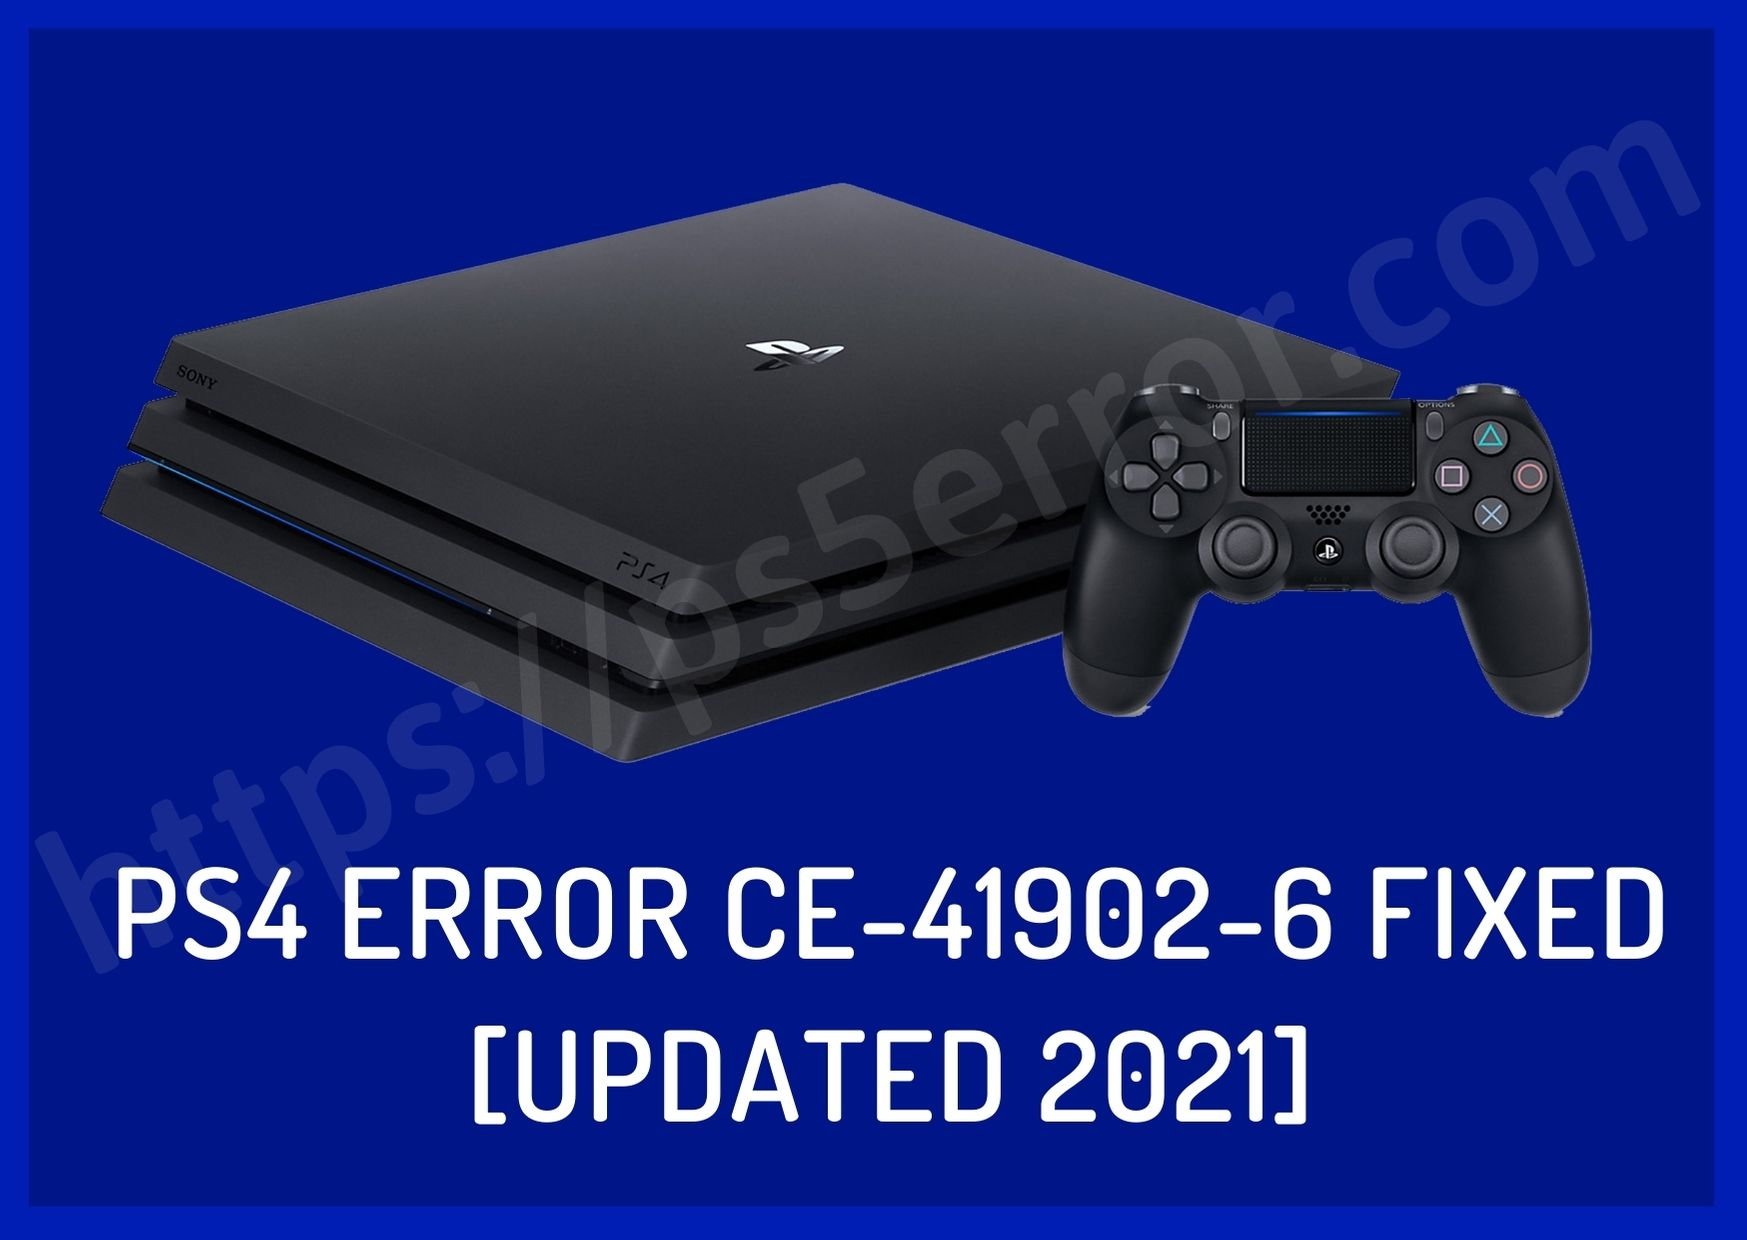 PS4 Error CE-41902-6 Fixed [Updated 2021]